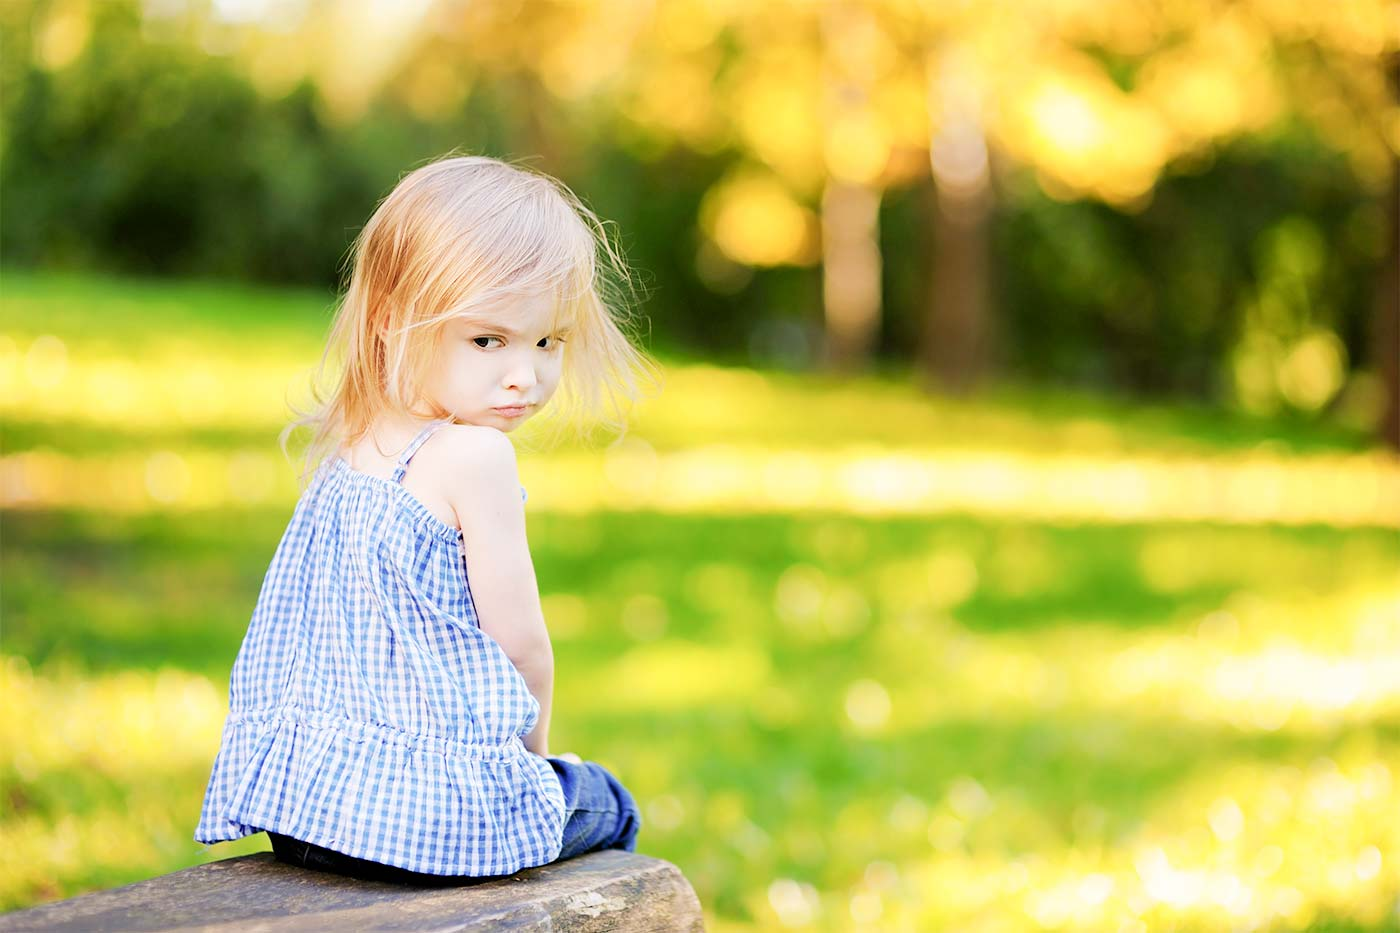 Mad little girl sitting outside with her back turned